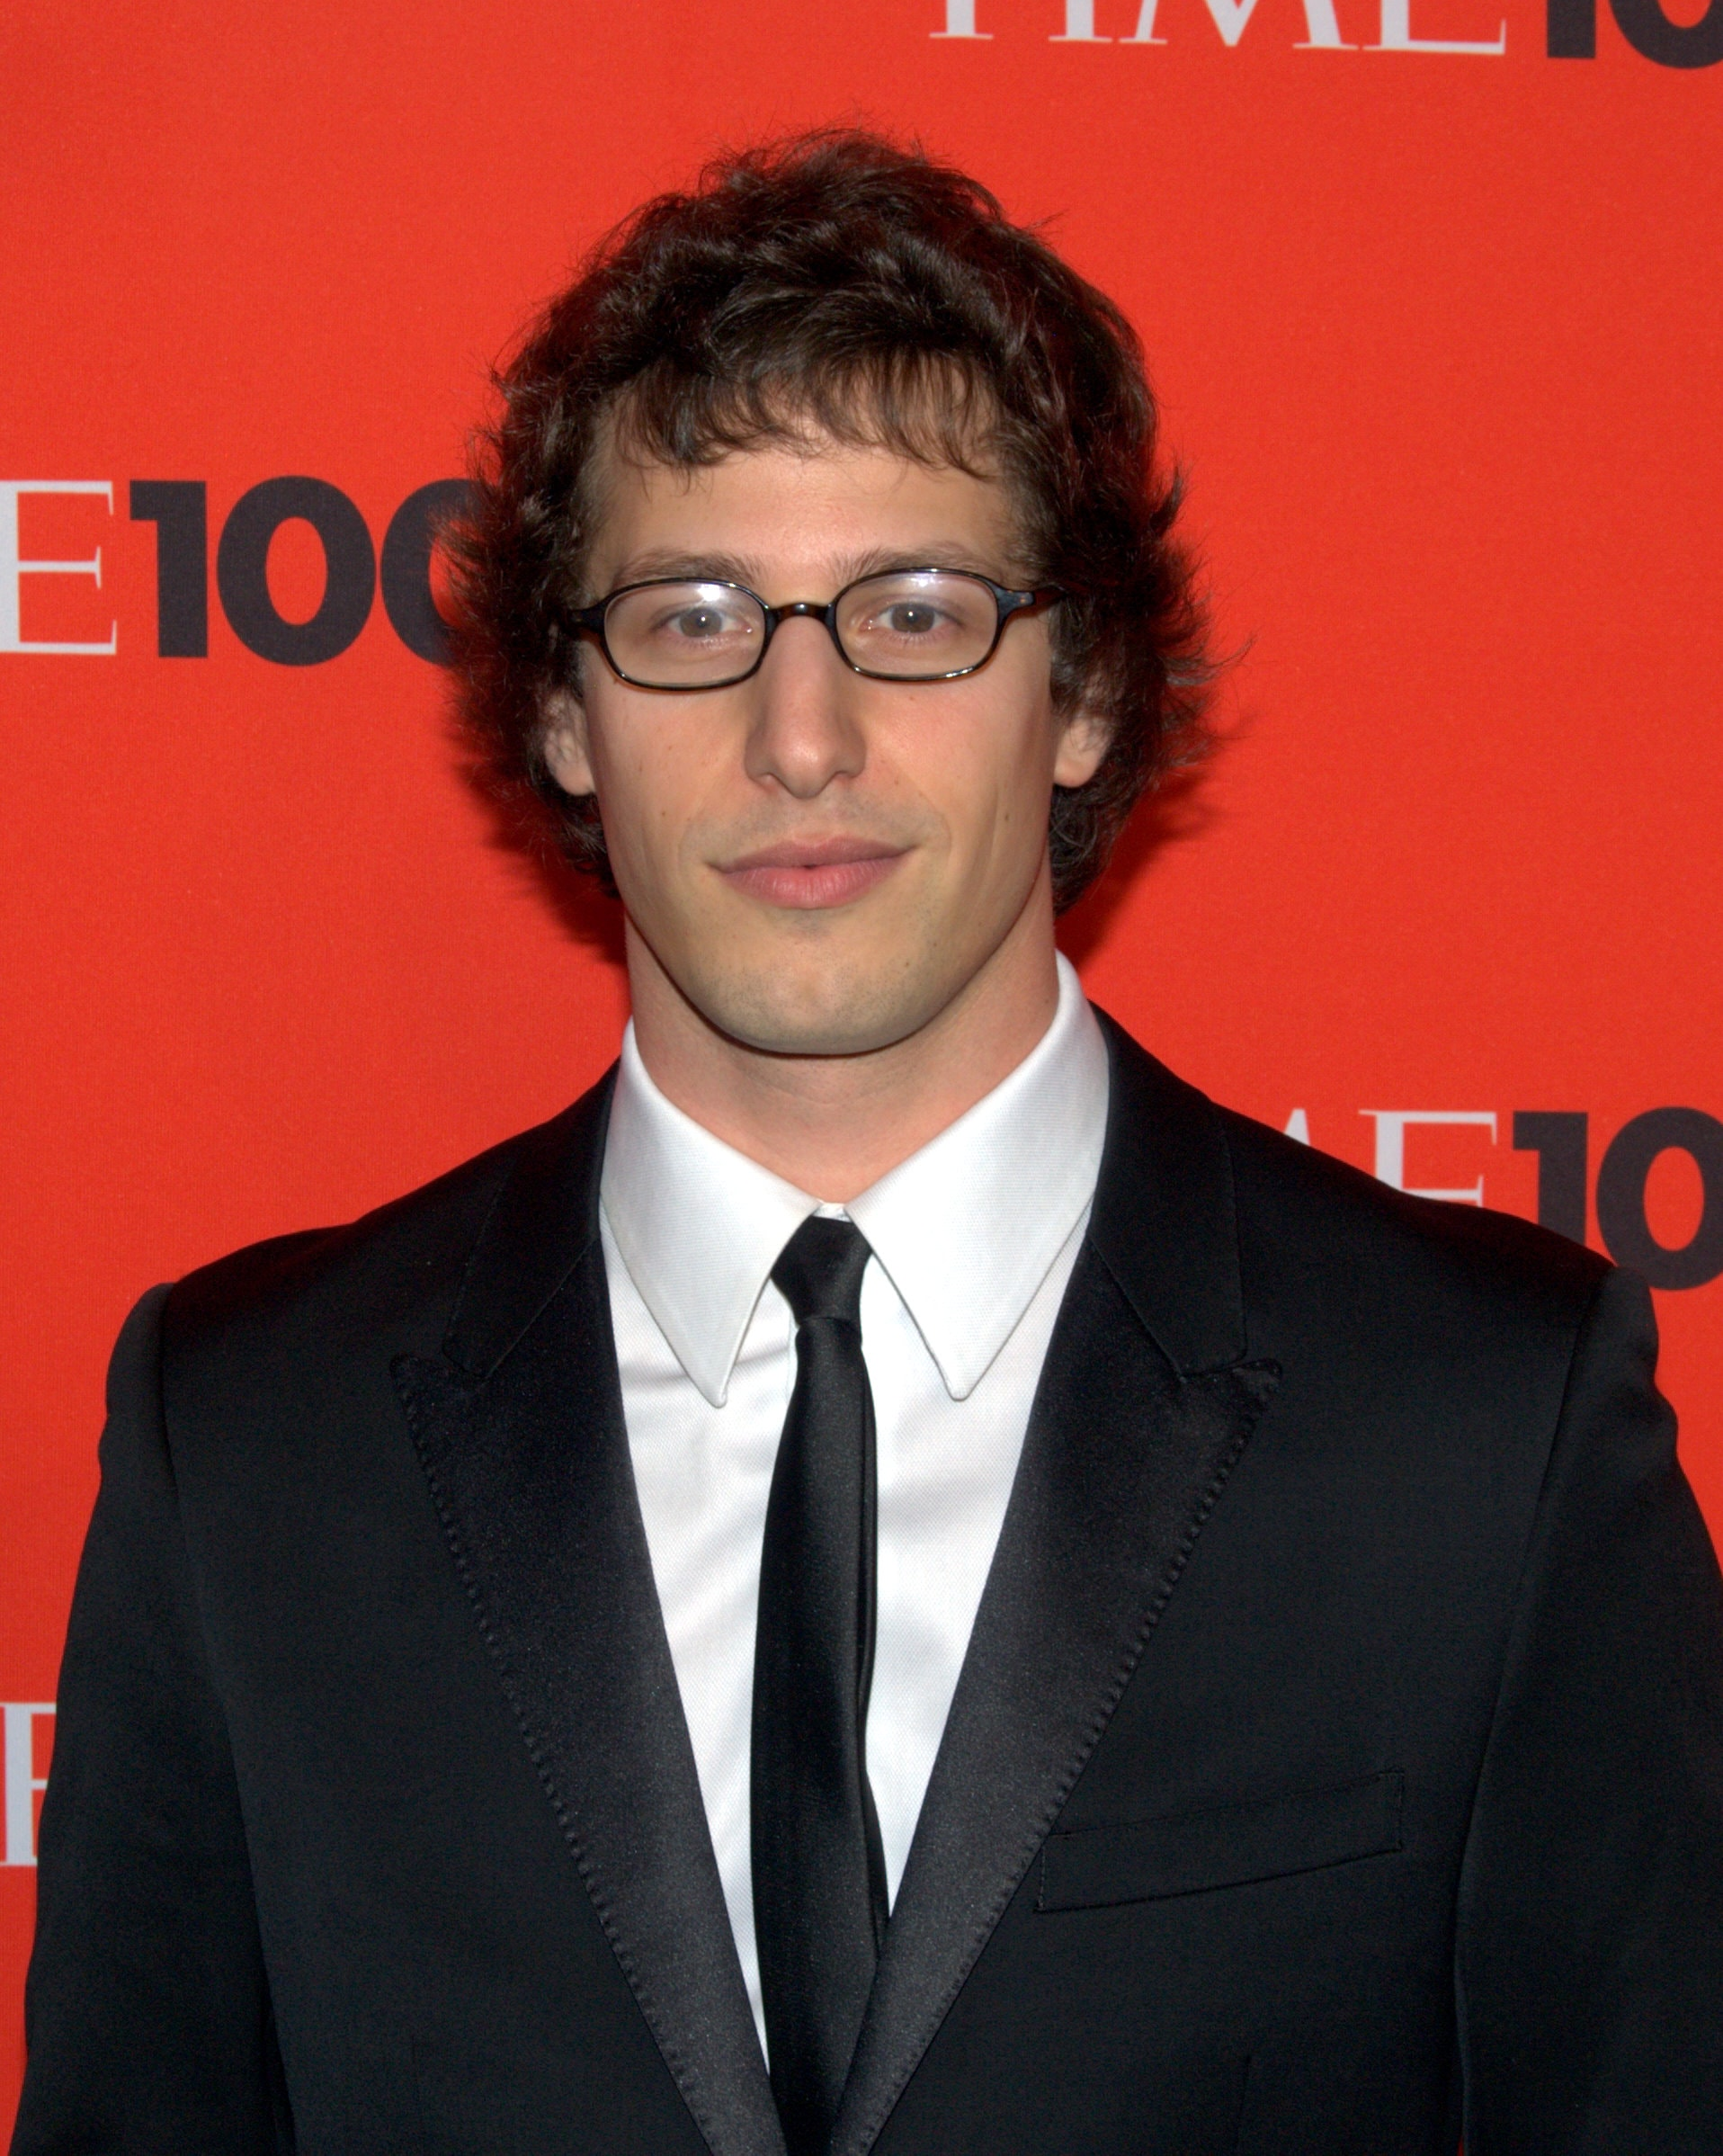 Andy Samberg Wallpapers